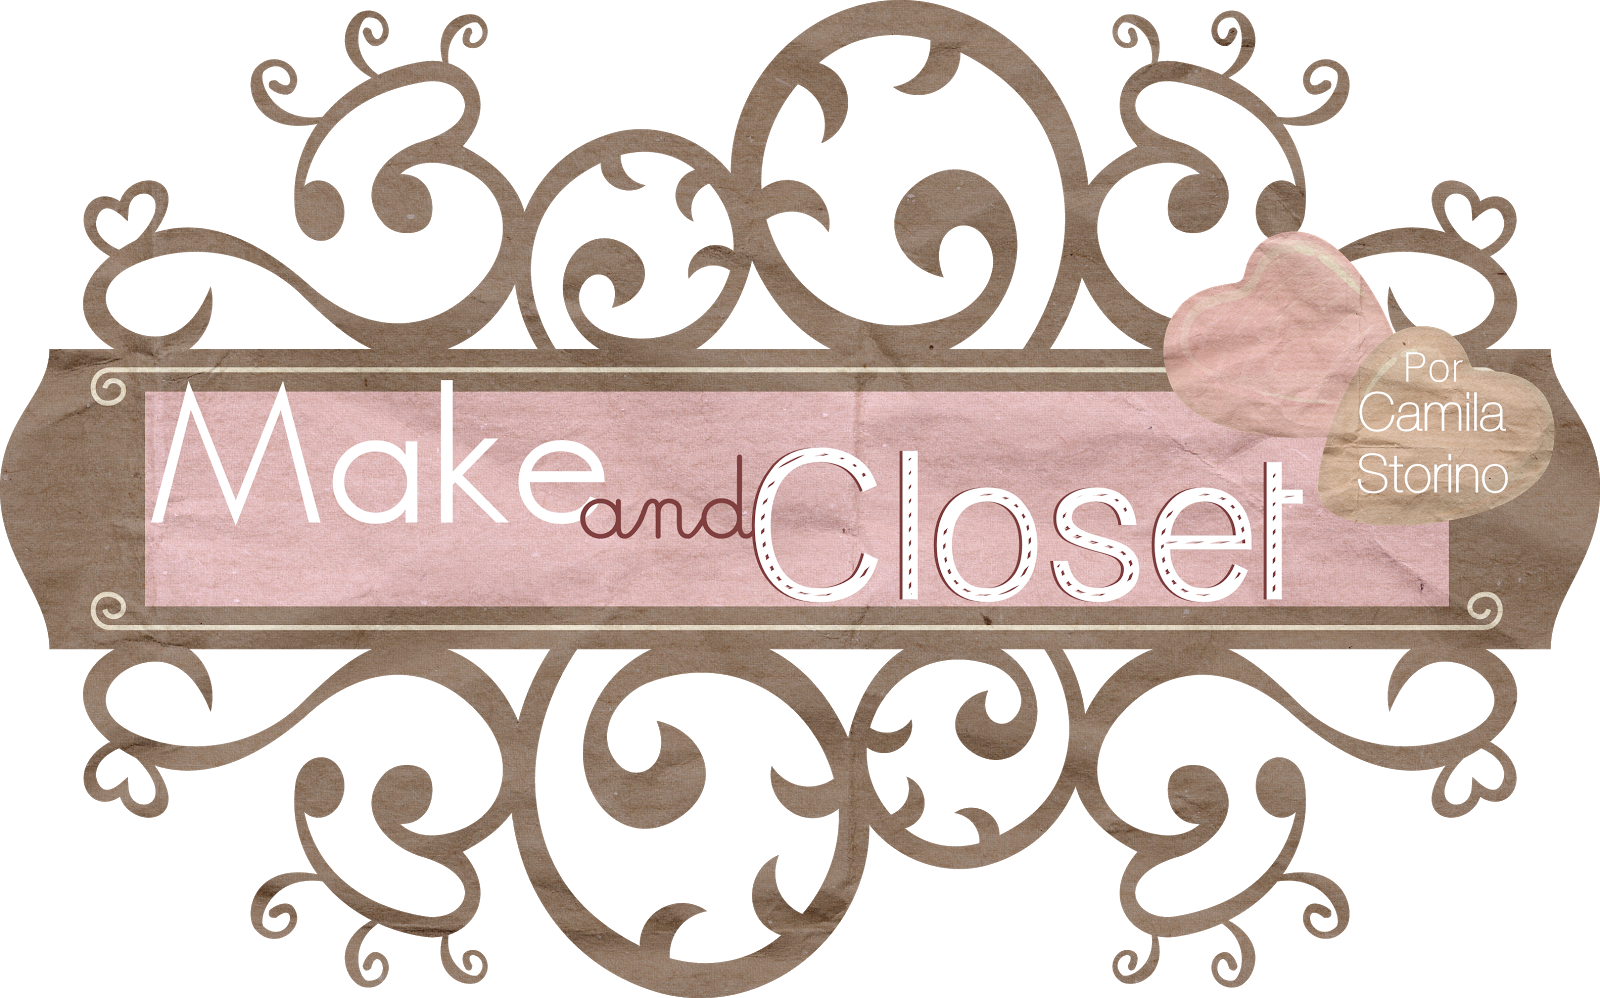 Make and Closet | Por Camila Storino